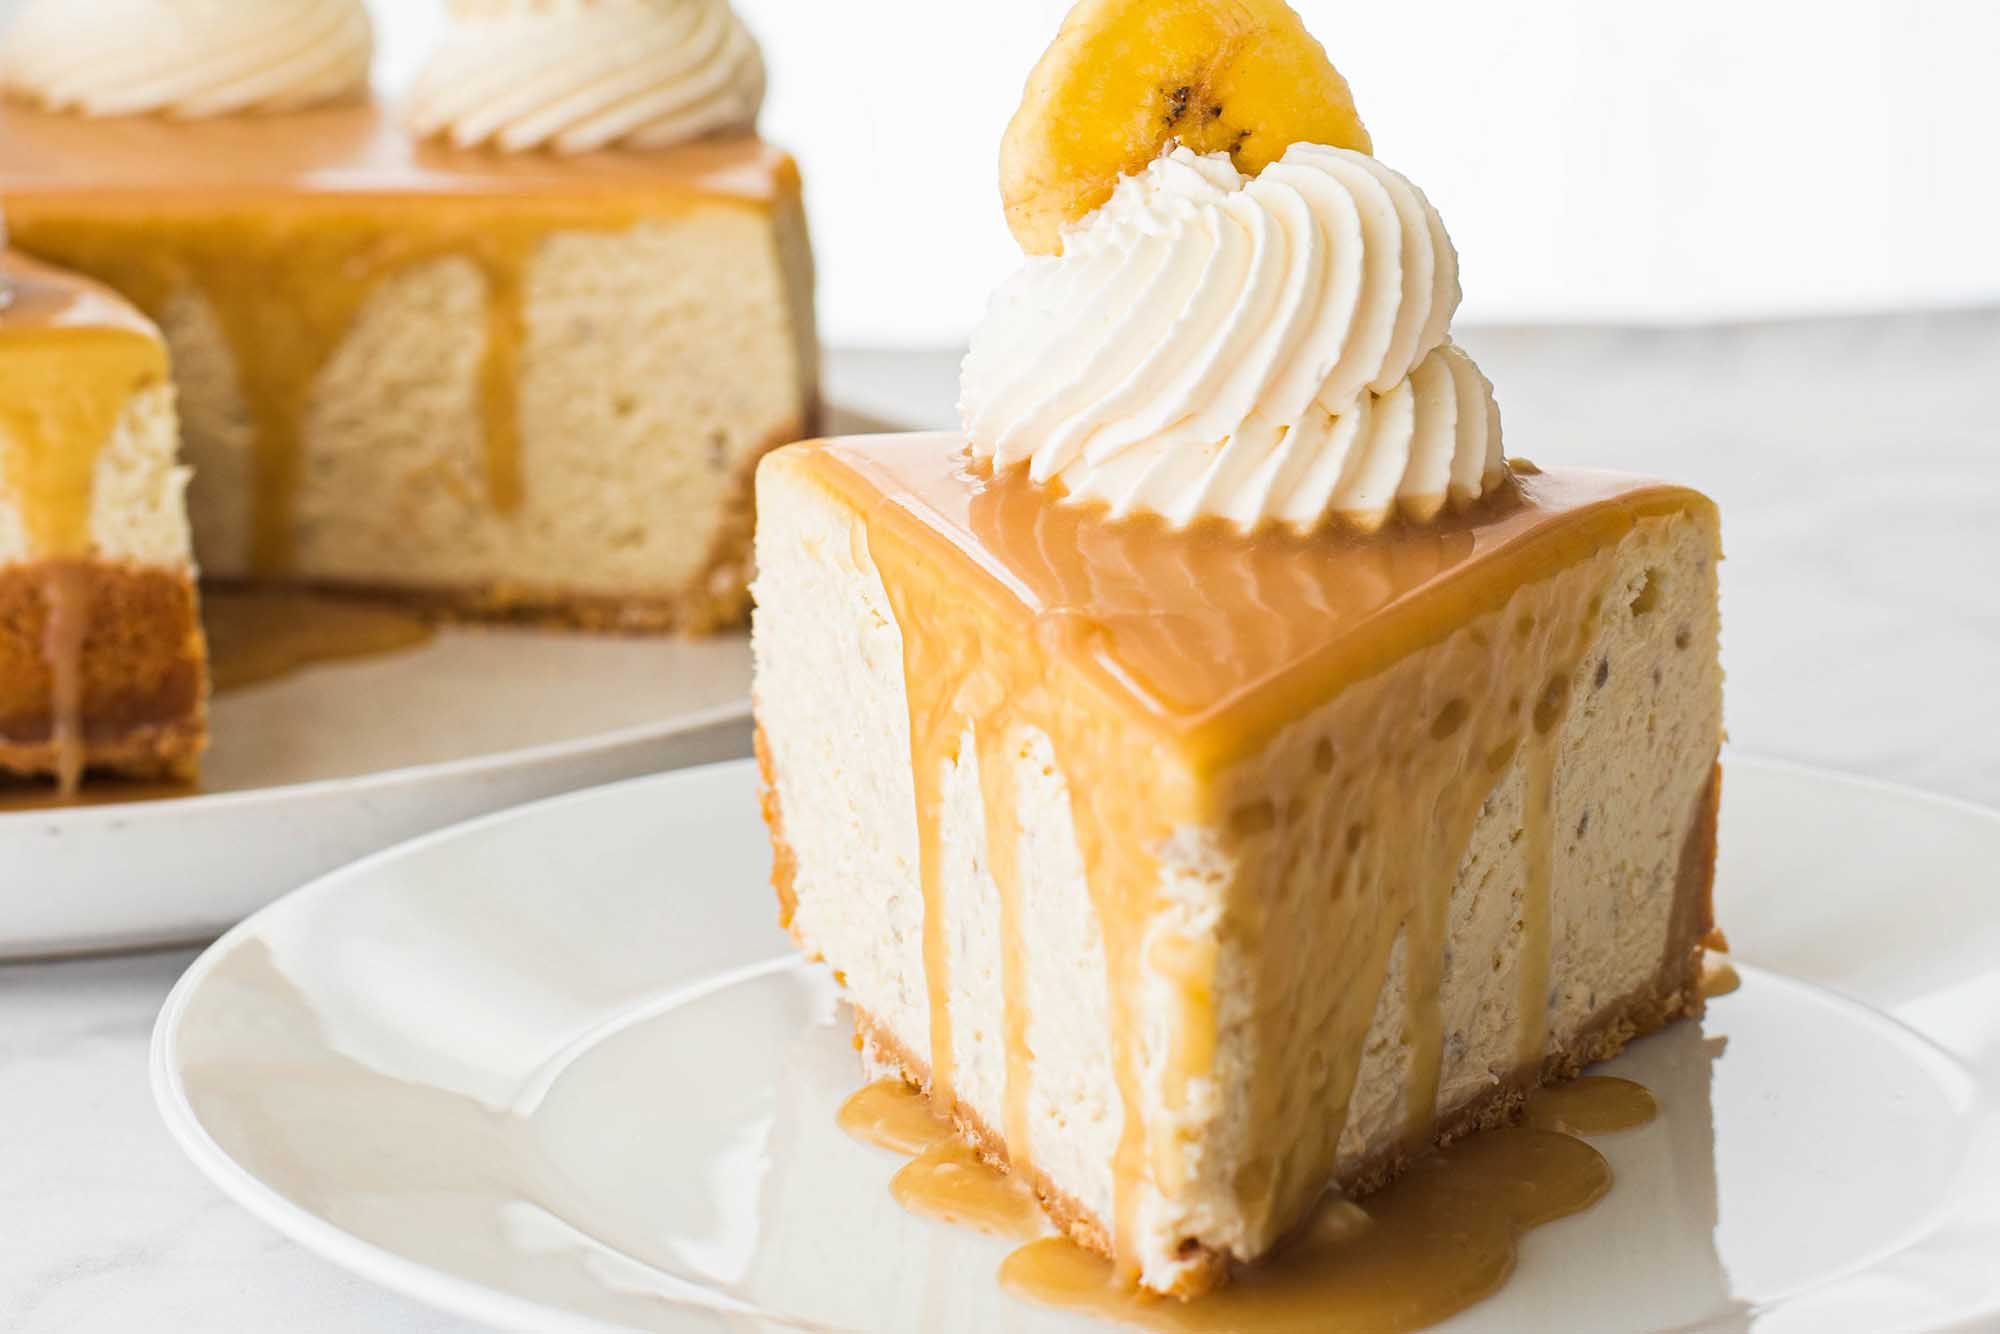 Easy Banoffee Cheesecake Pie - slice of pie with mound of whipped cream and banana slice